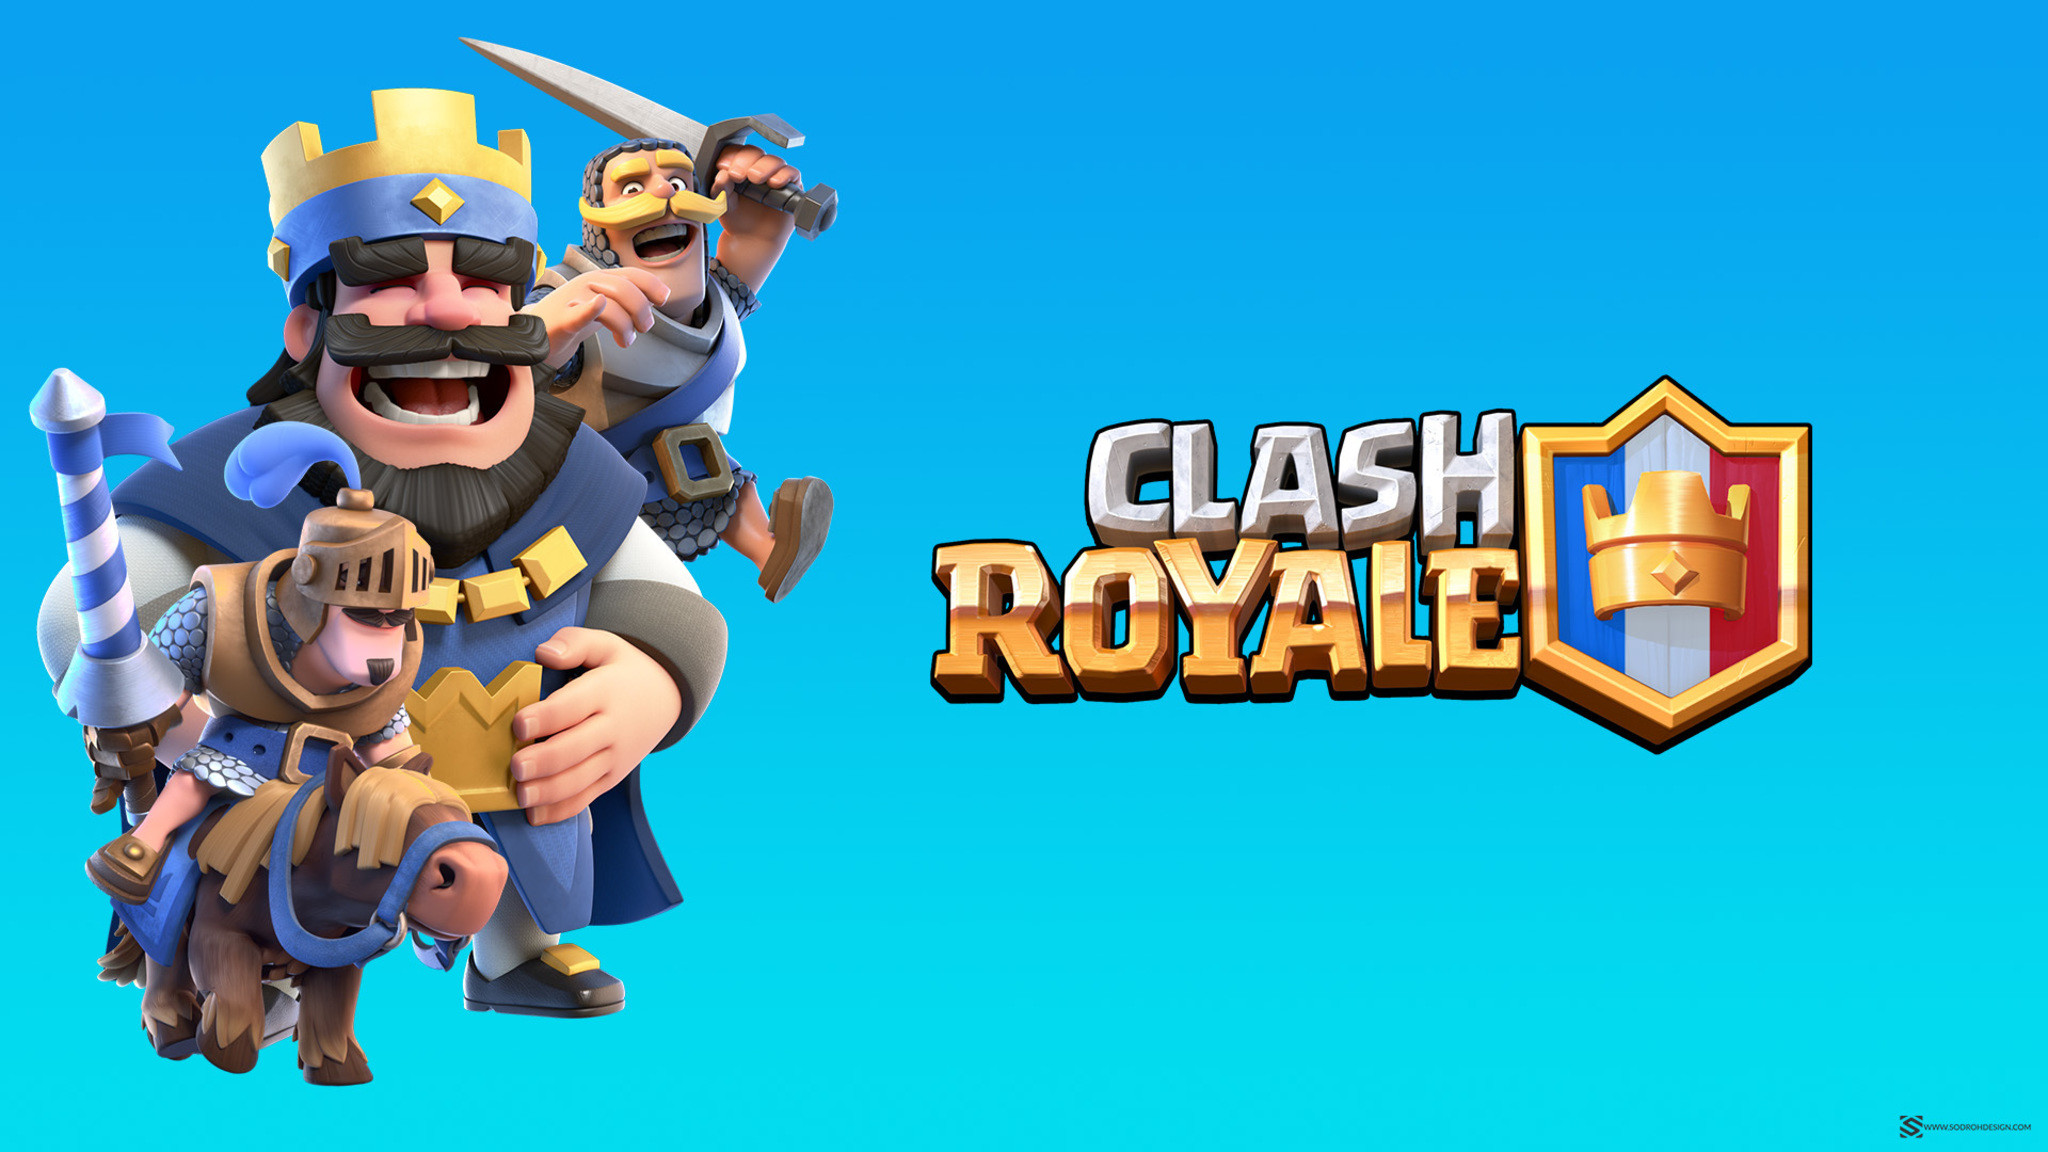 2048x1152 clash-royale-desktop-wide.jpg